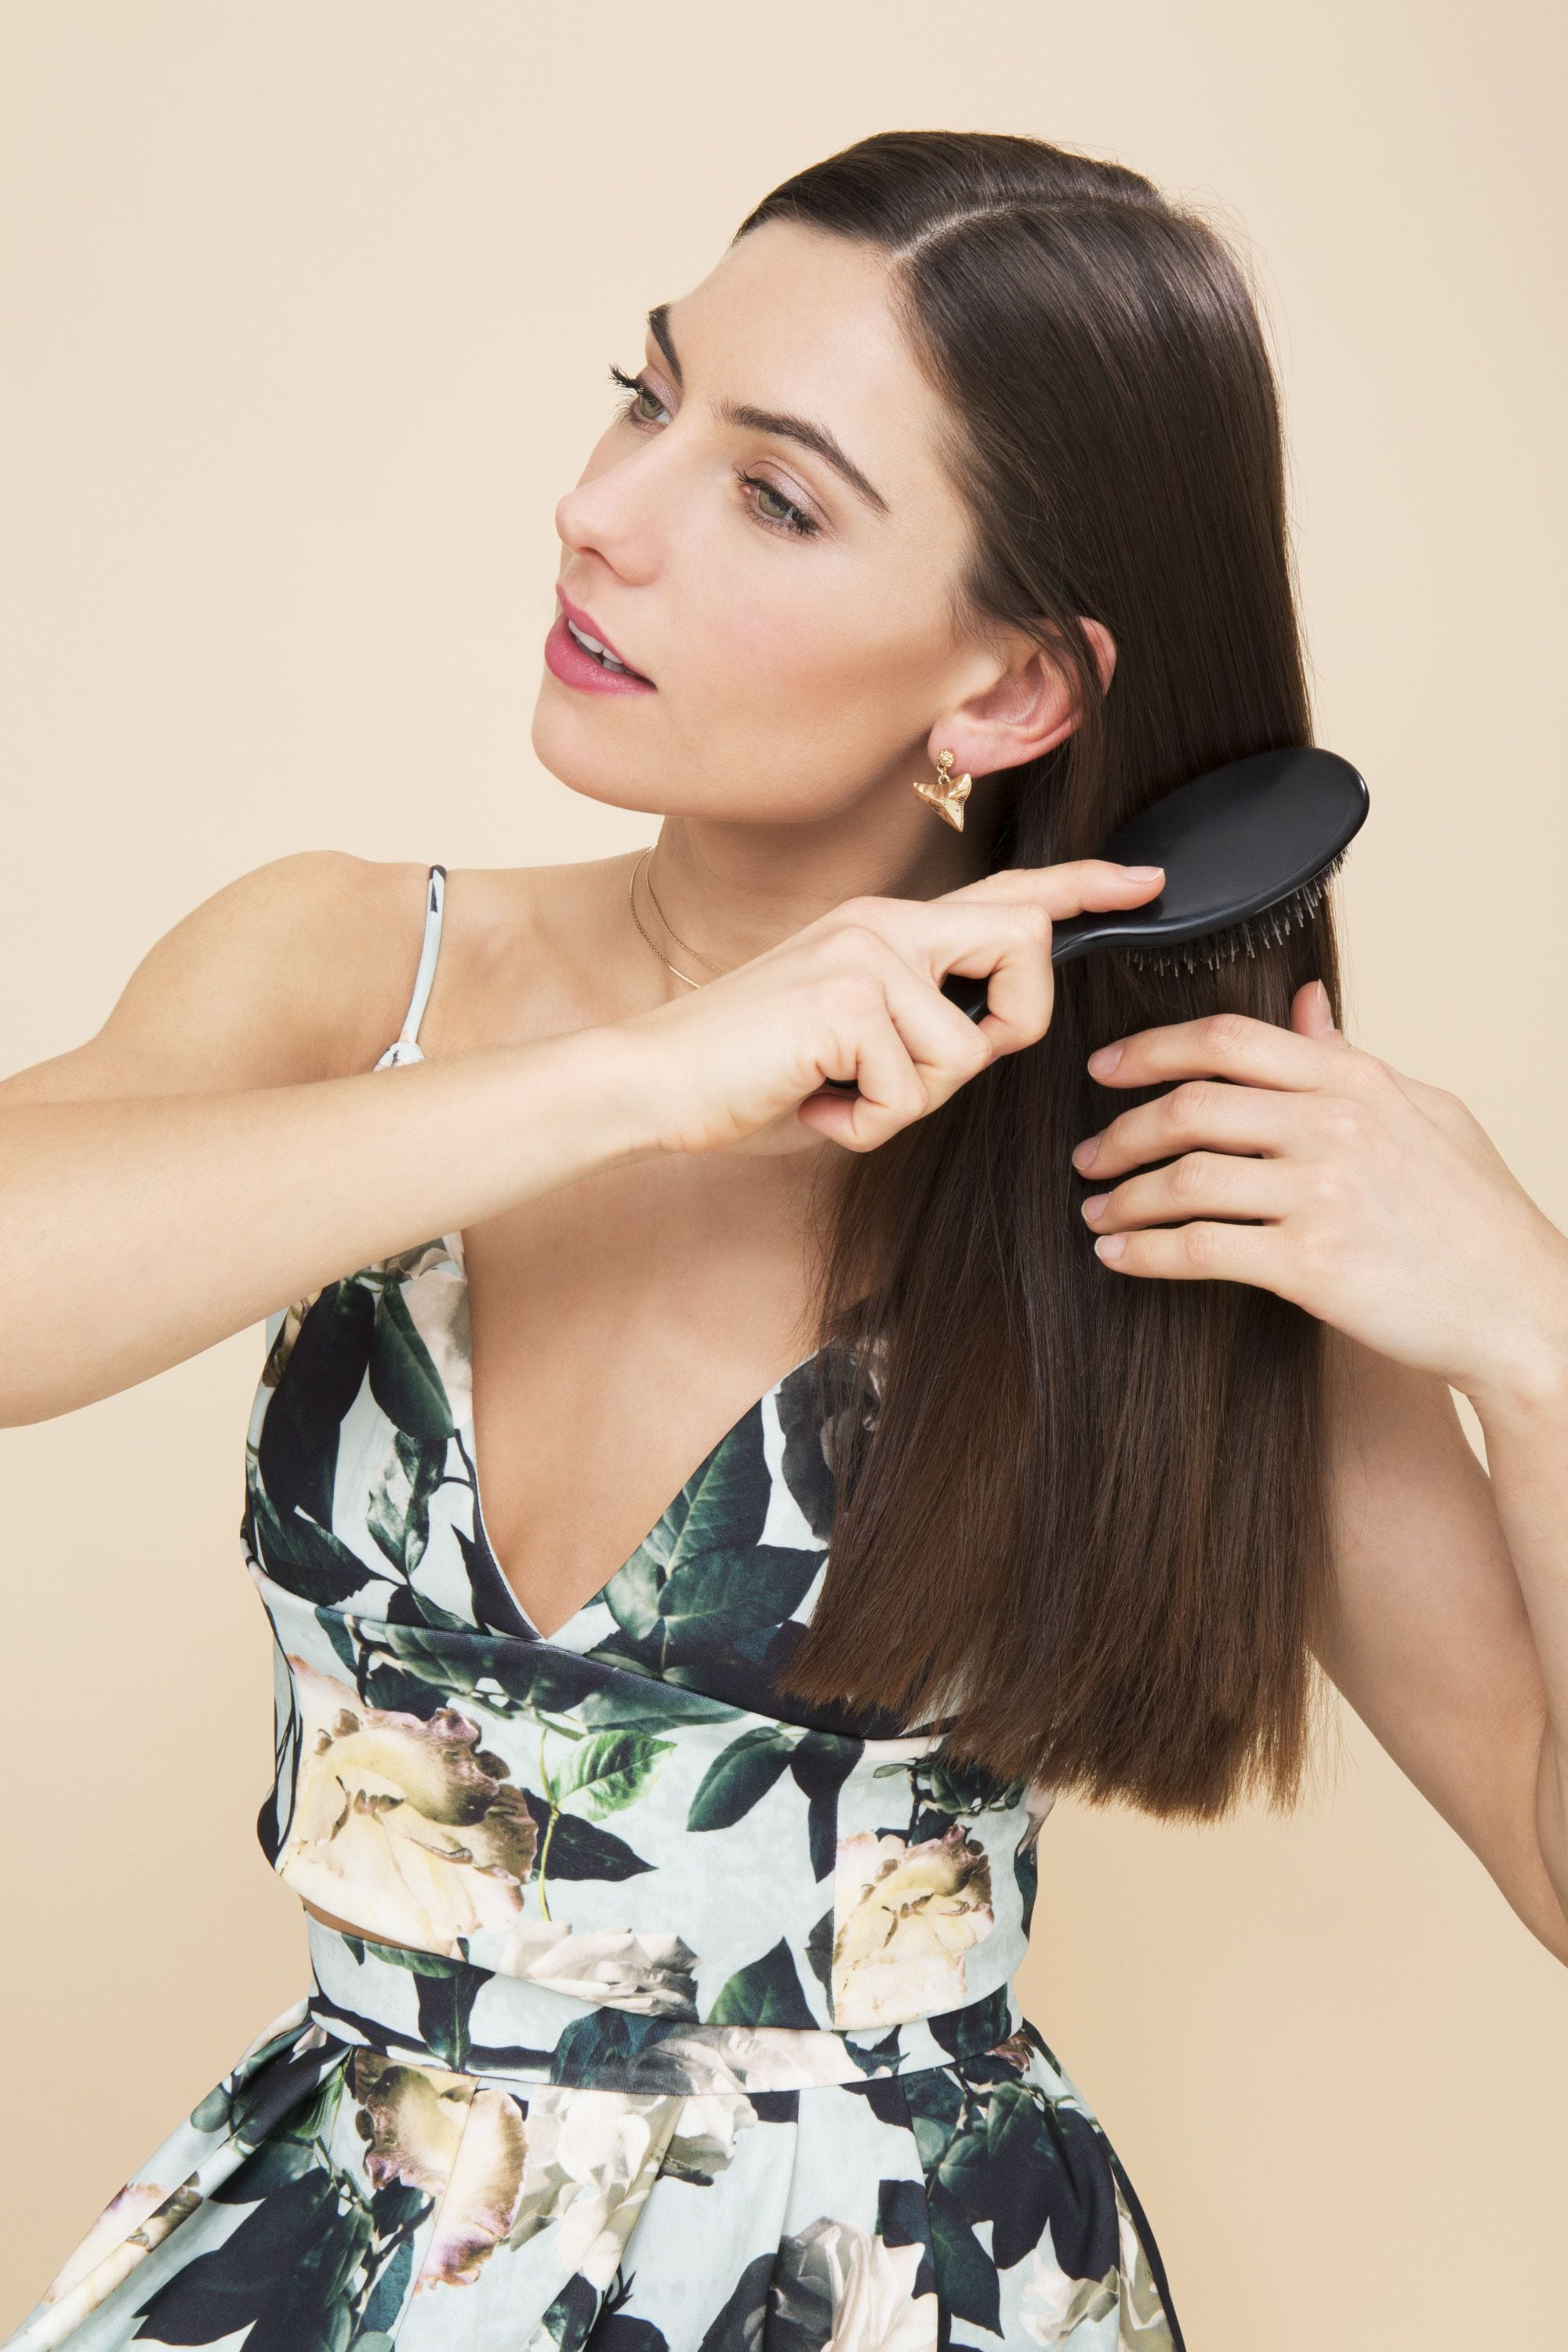 brunette model in a floral dress brushing her hair with a paddle brush